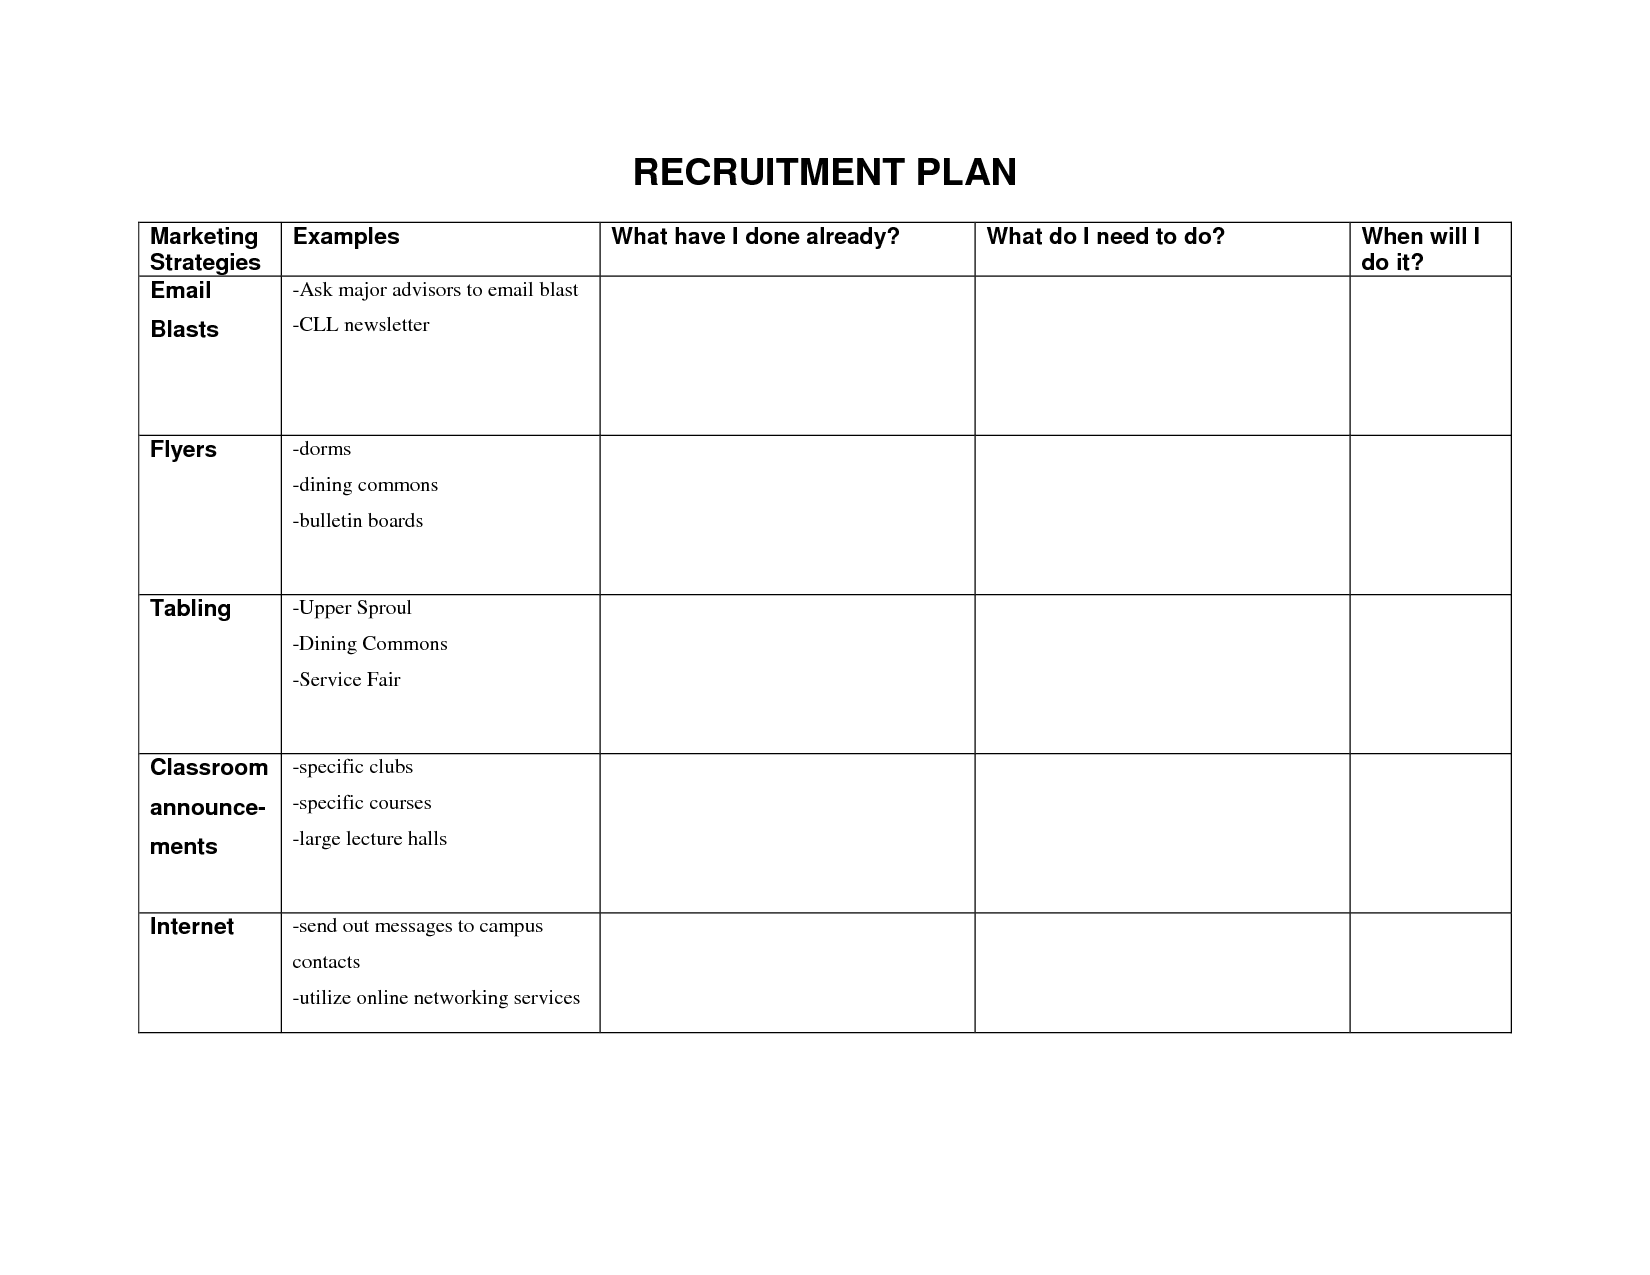 recruitment forms and templates | Recruiter Forms | Pinterest ...